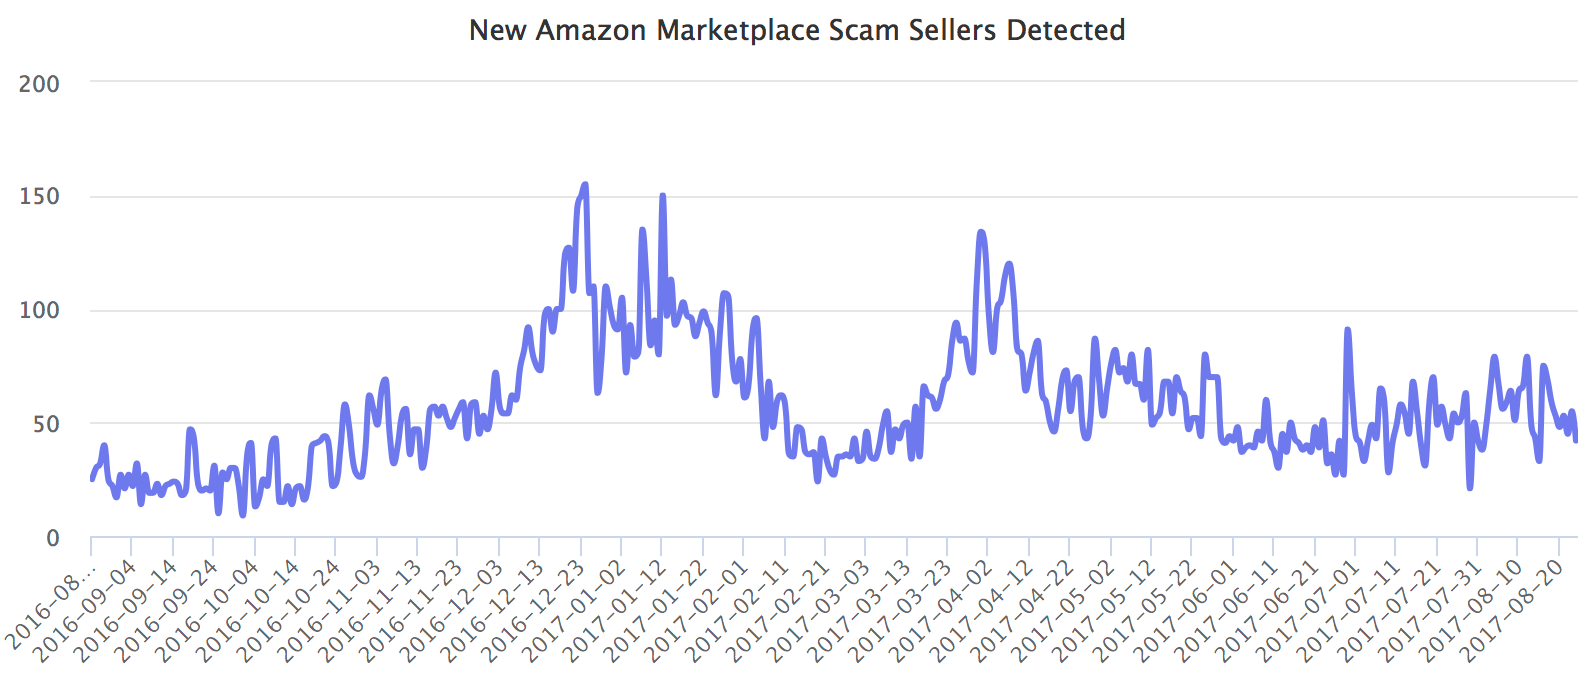 New Amazon Marketplace Scam Sellers Detected